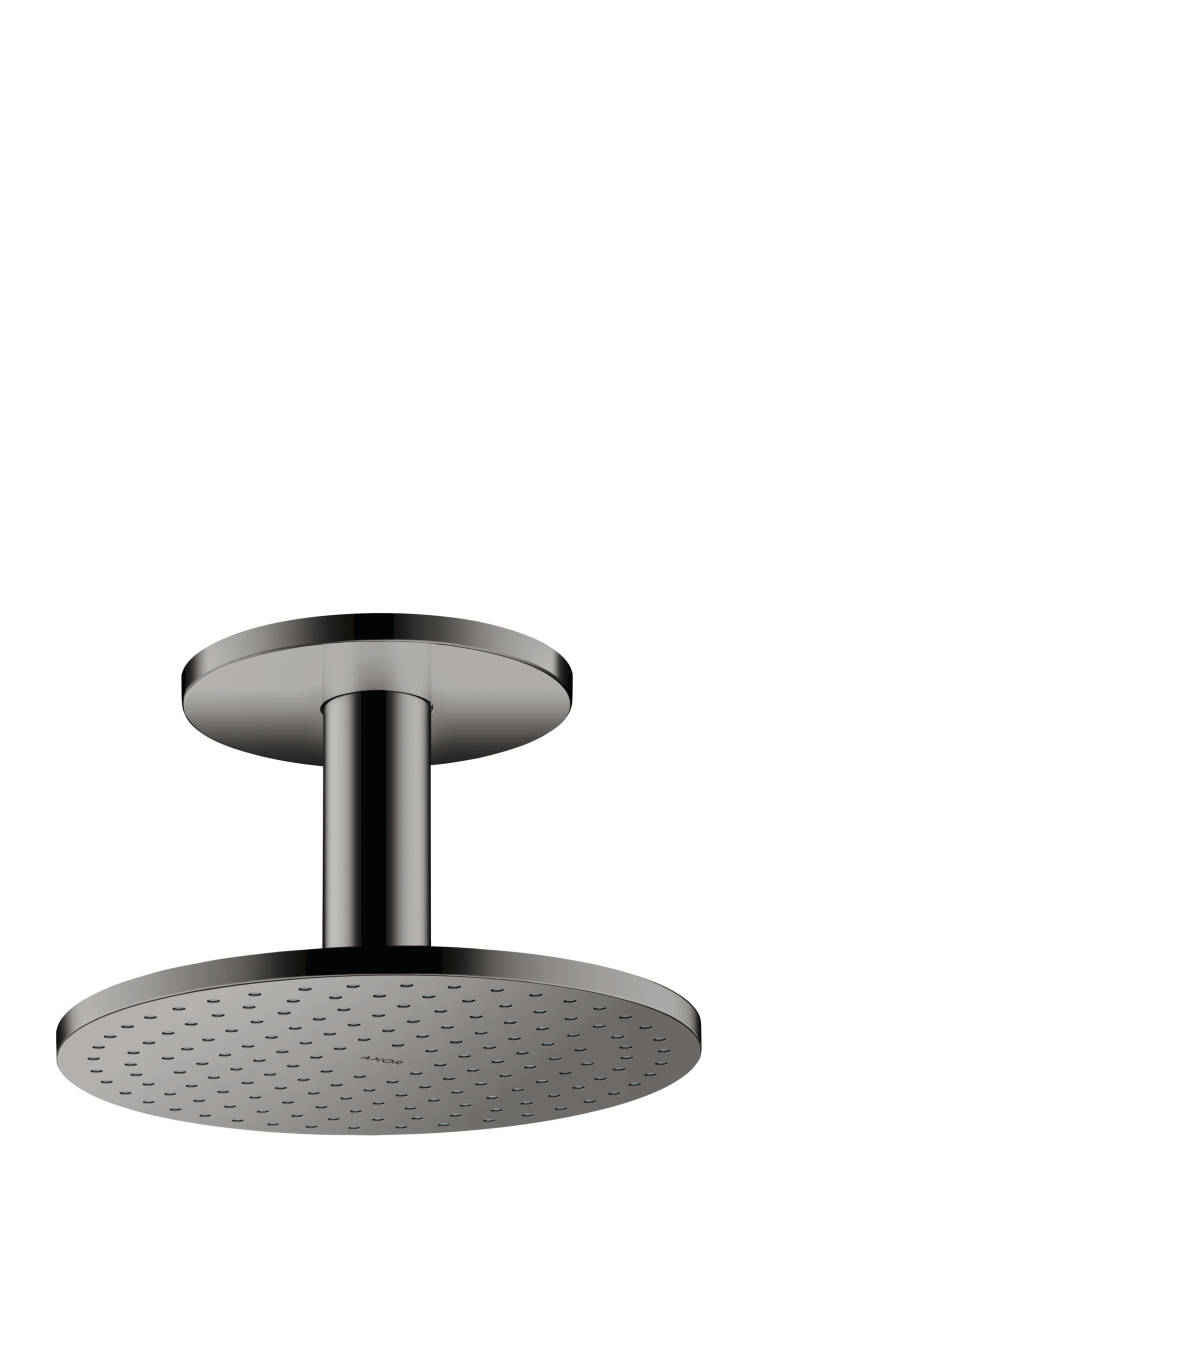 Overhead shower 250 1jet with ceiling connection, Polished Black Chrome, 35286330